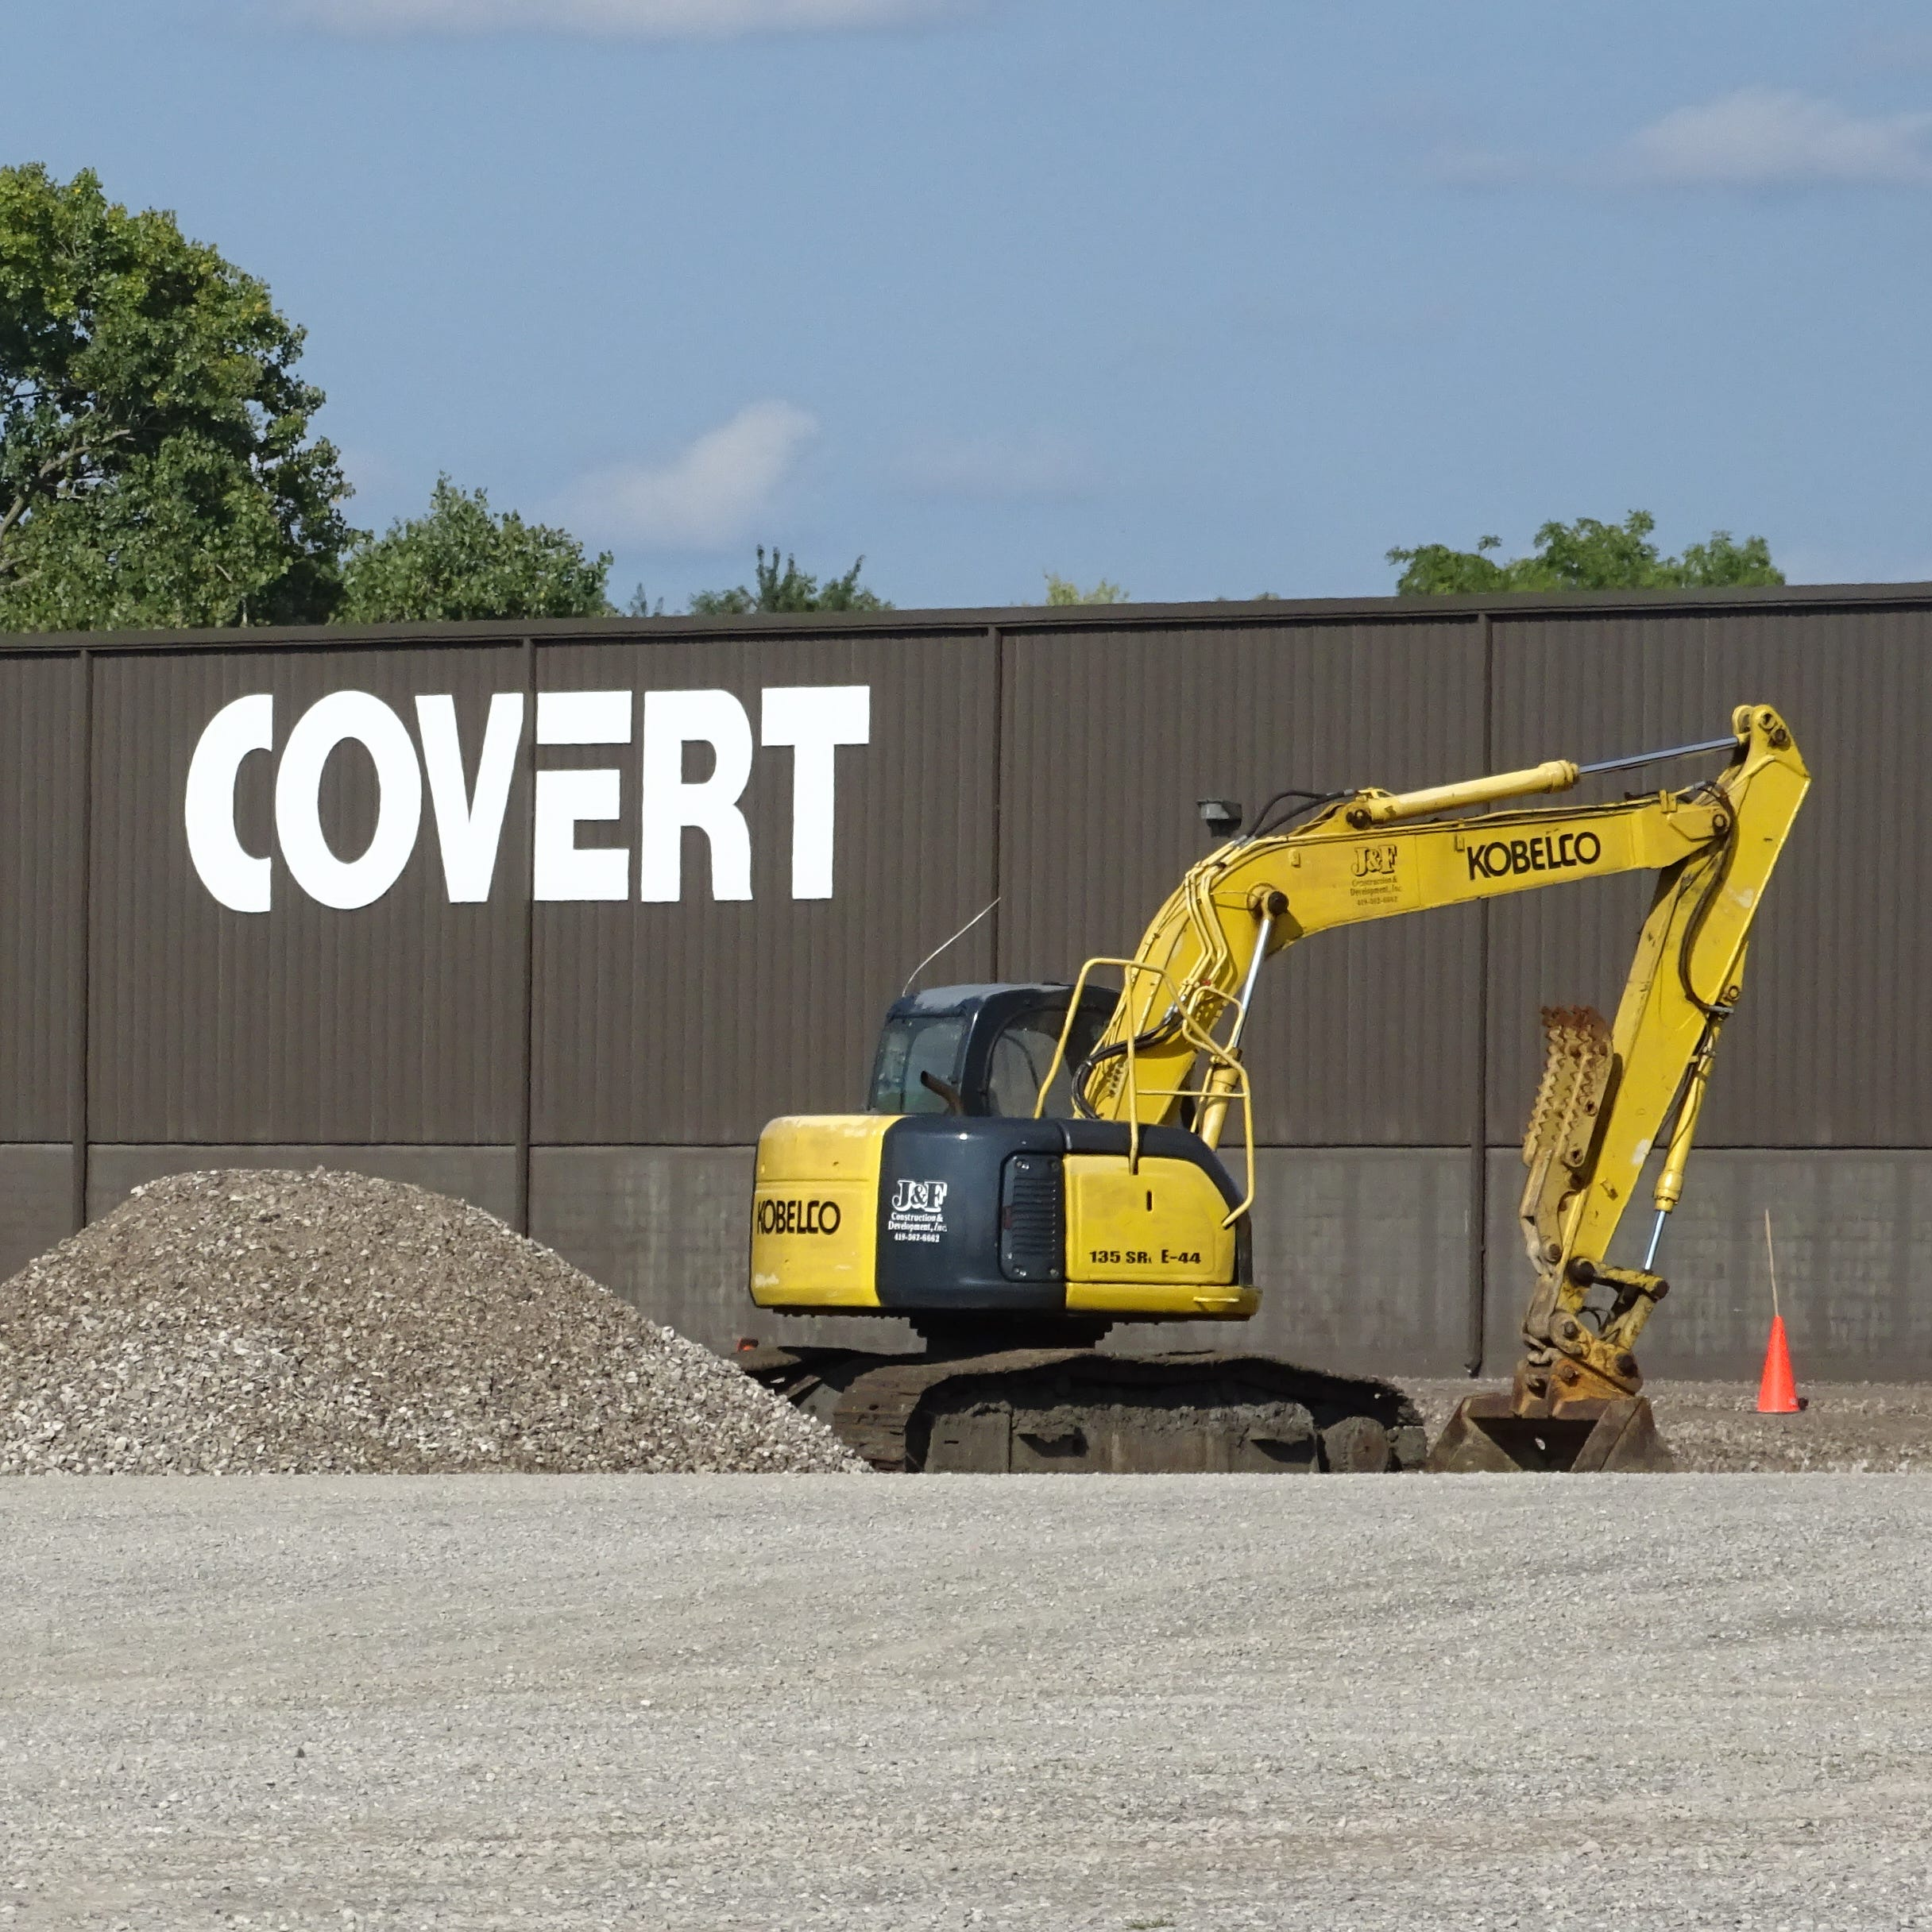 Covert spending $7.9 million to create 35 Galion jobs